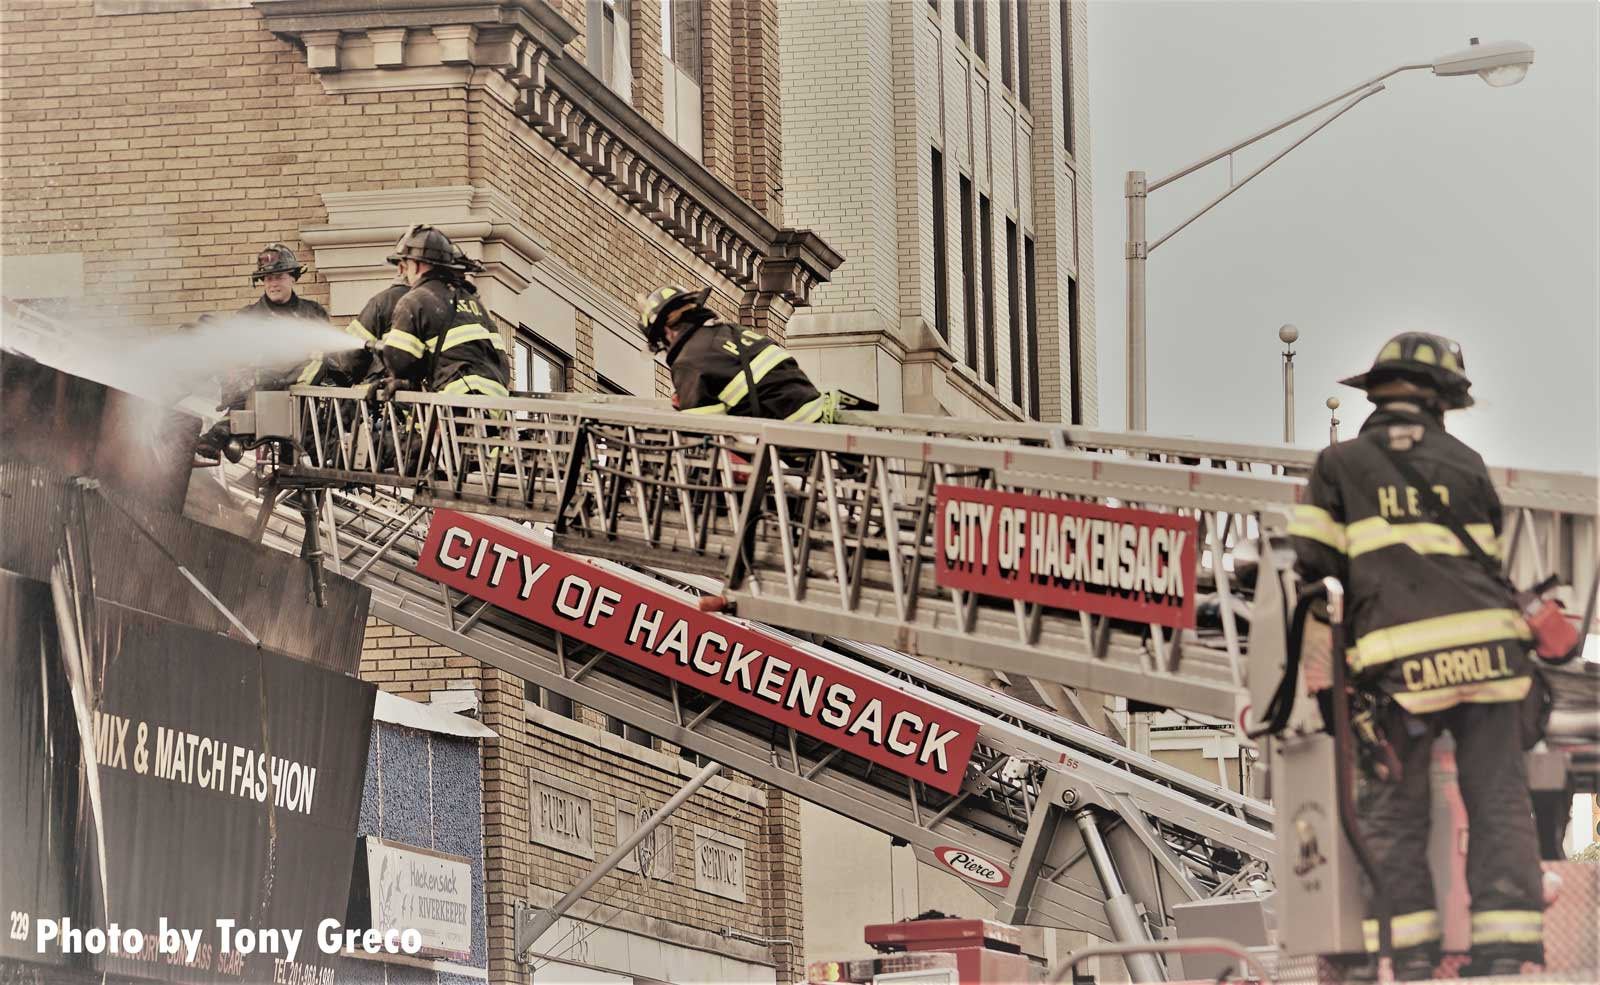 Hackensack firefighters on an aerial device